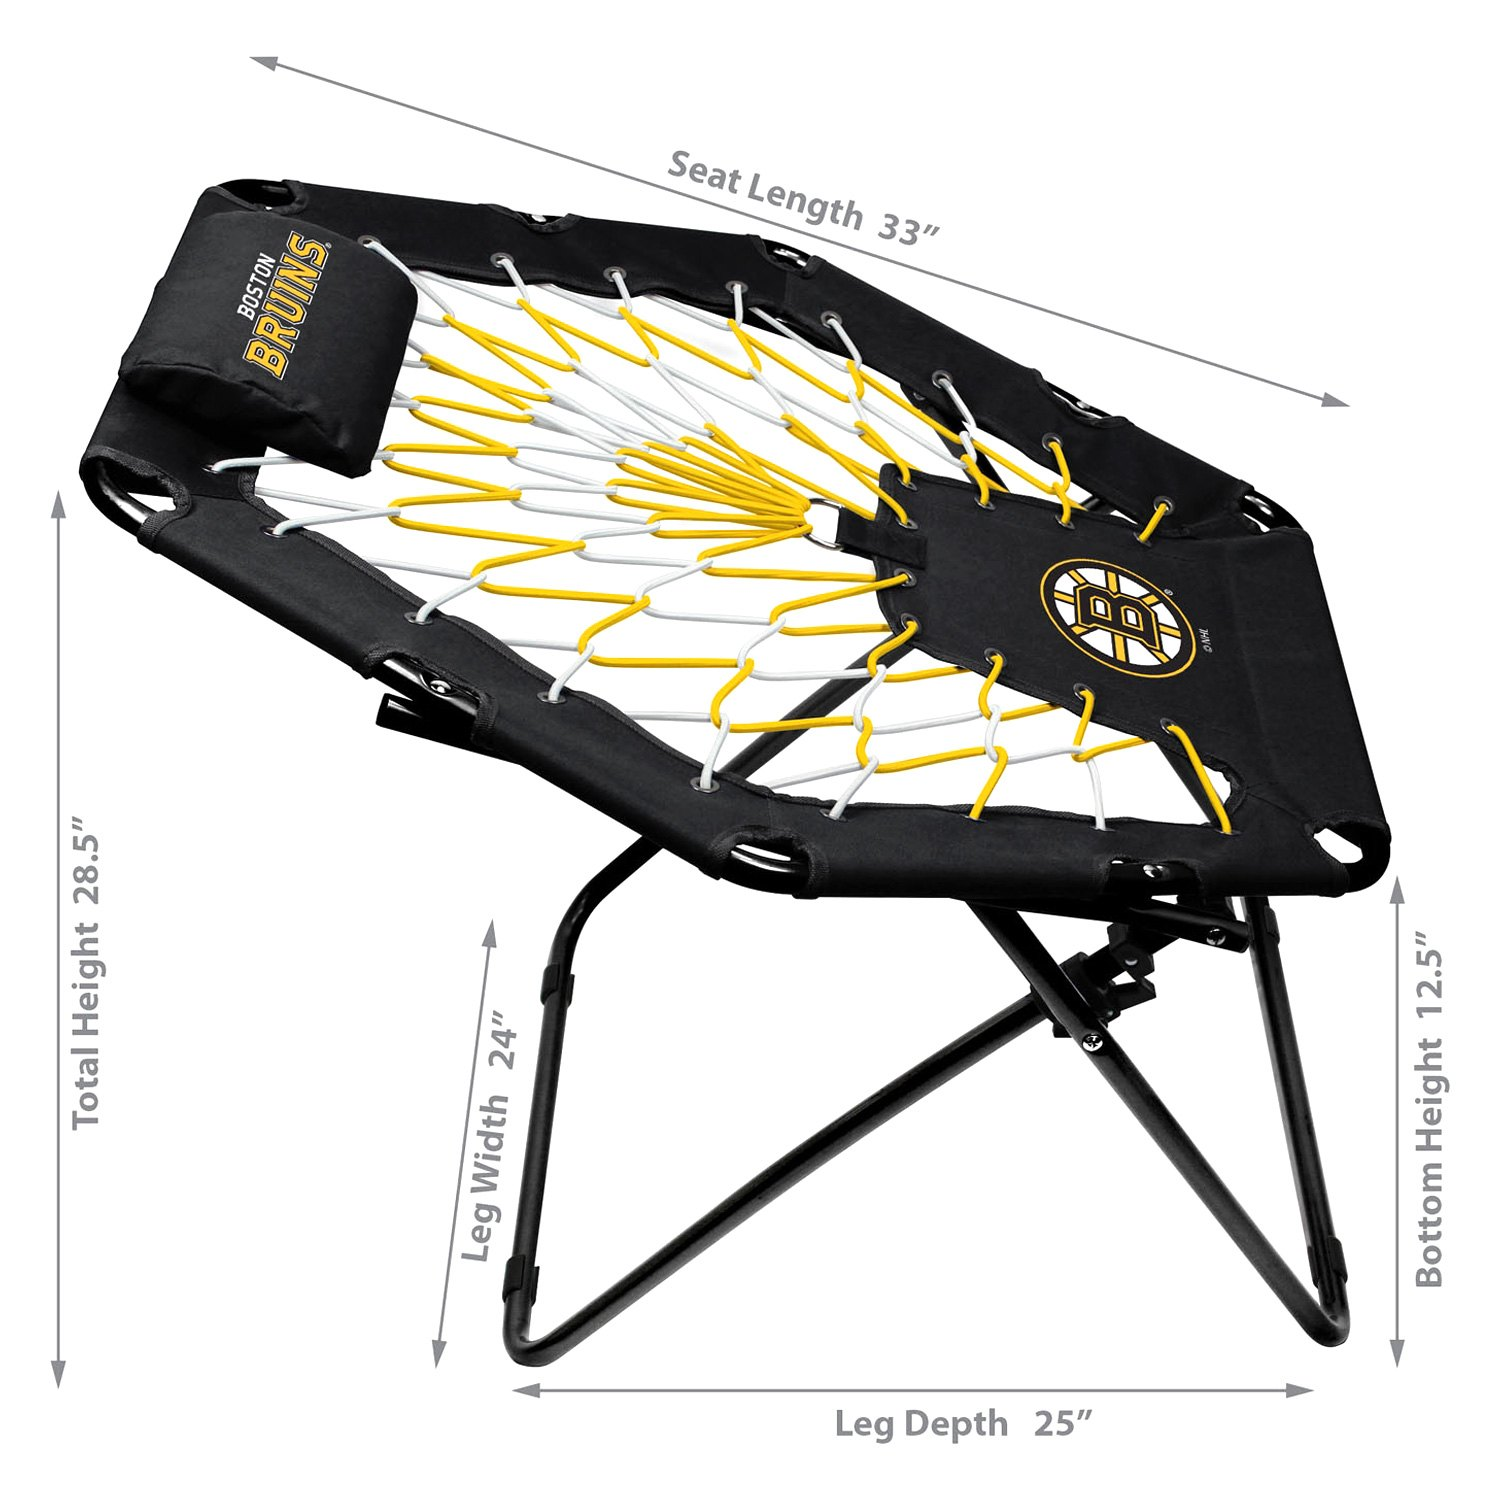 Admirable Imperial International Imp 478 4001 Nhl Premium Bungee Chair With Boston Bruins Logo Alphanode Cool Chair Designs And Ideas Alphanodeonline